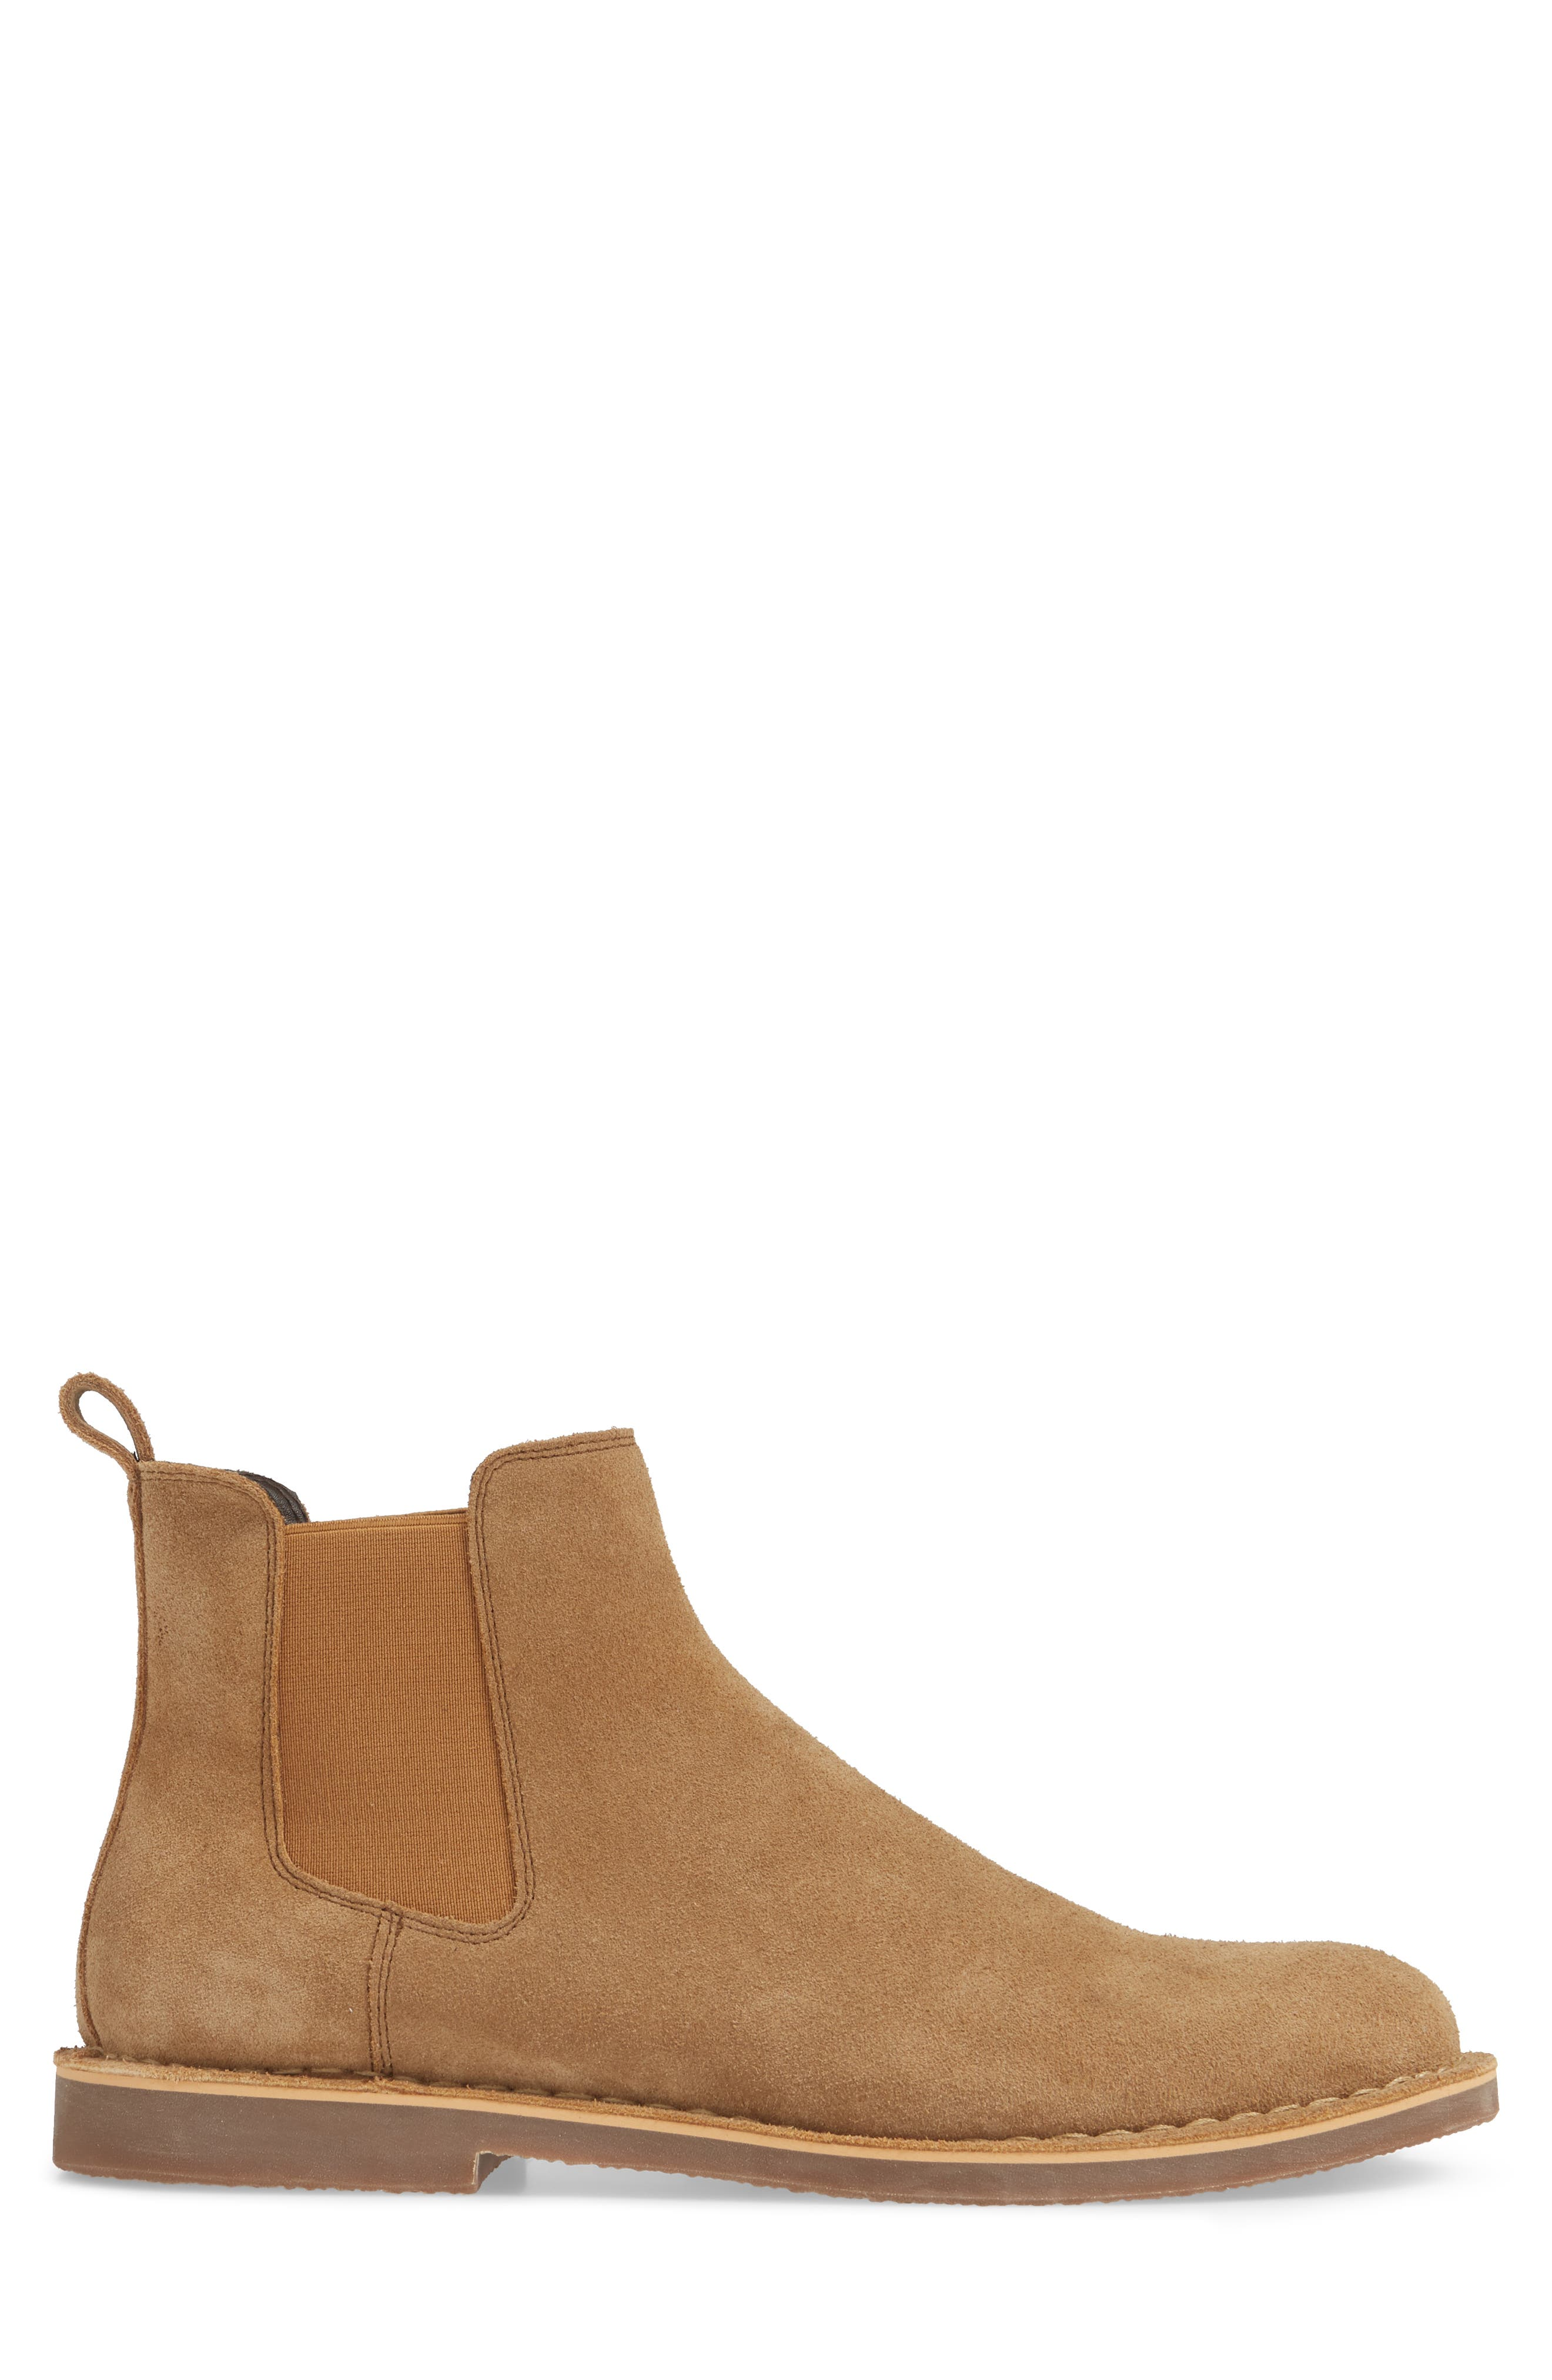 THE RAIL, Payson Chelsea Boot, Alternate thumbnail 3, color, SAND SUEDE